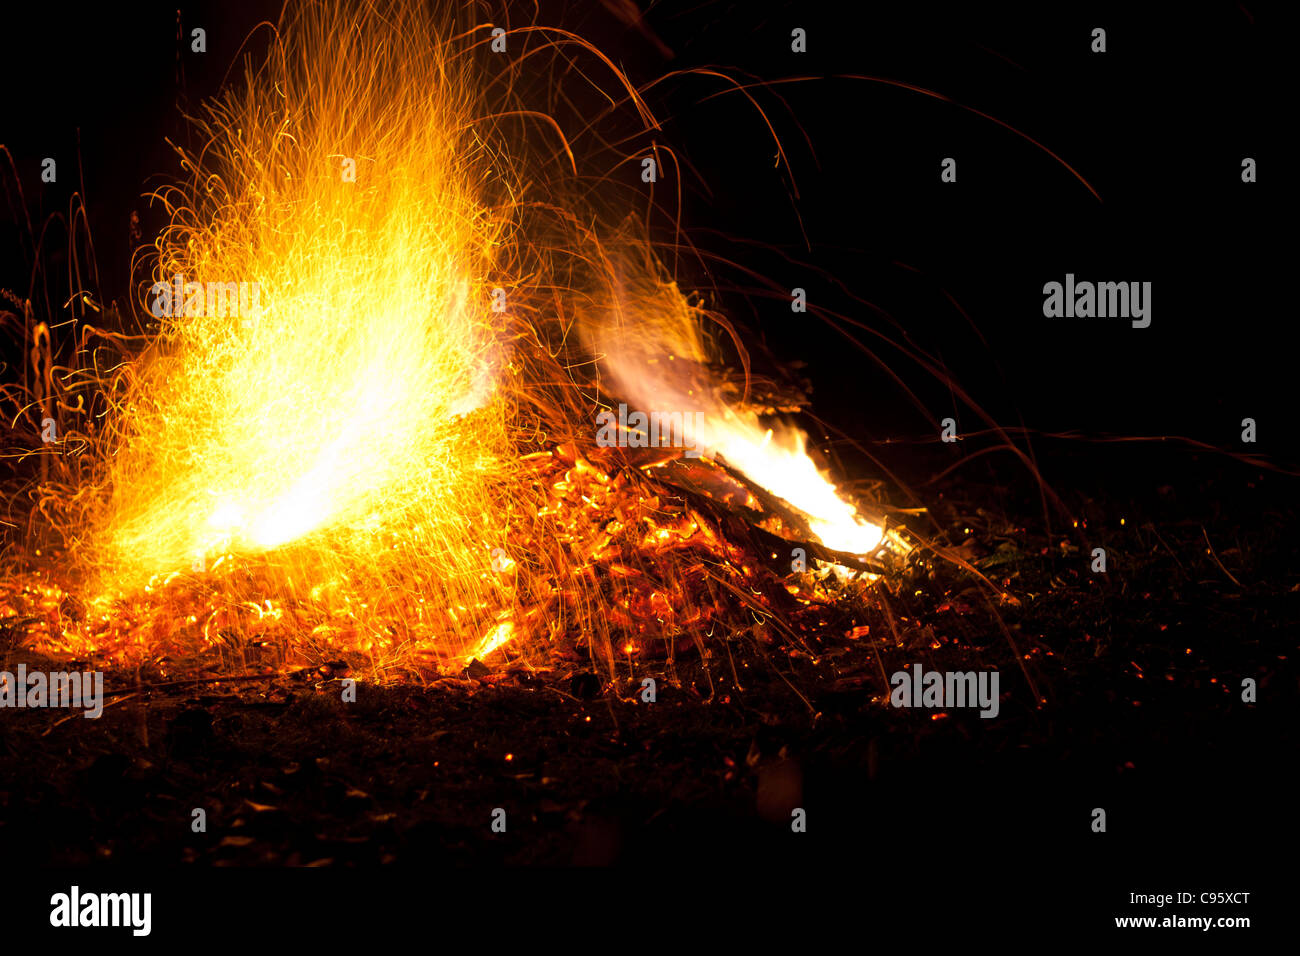 Fire with flames and sparks. Intense orange, yellow glow of bonfire against a black night background. - Stock Image